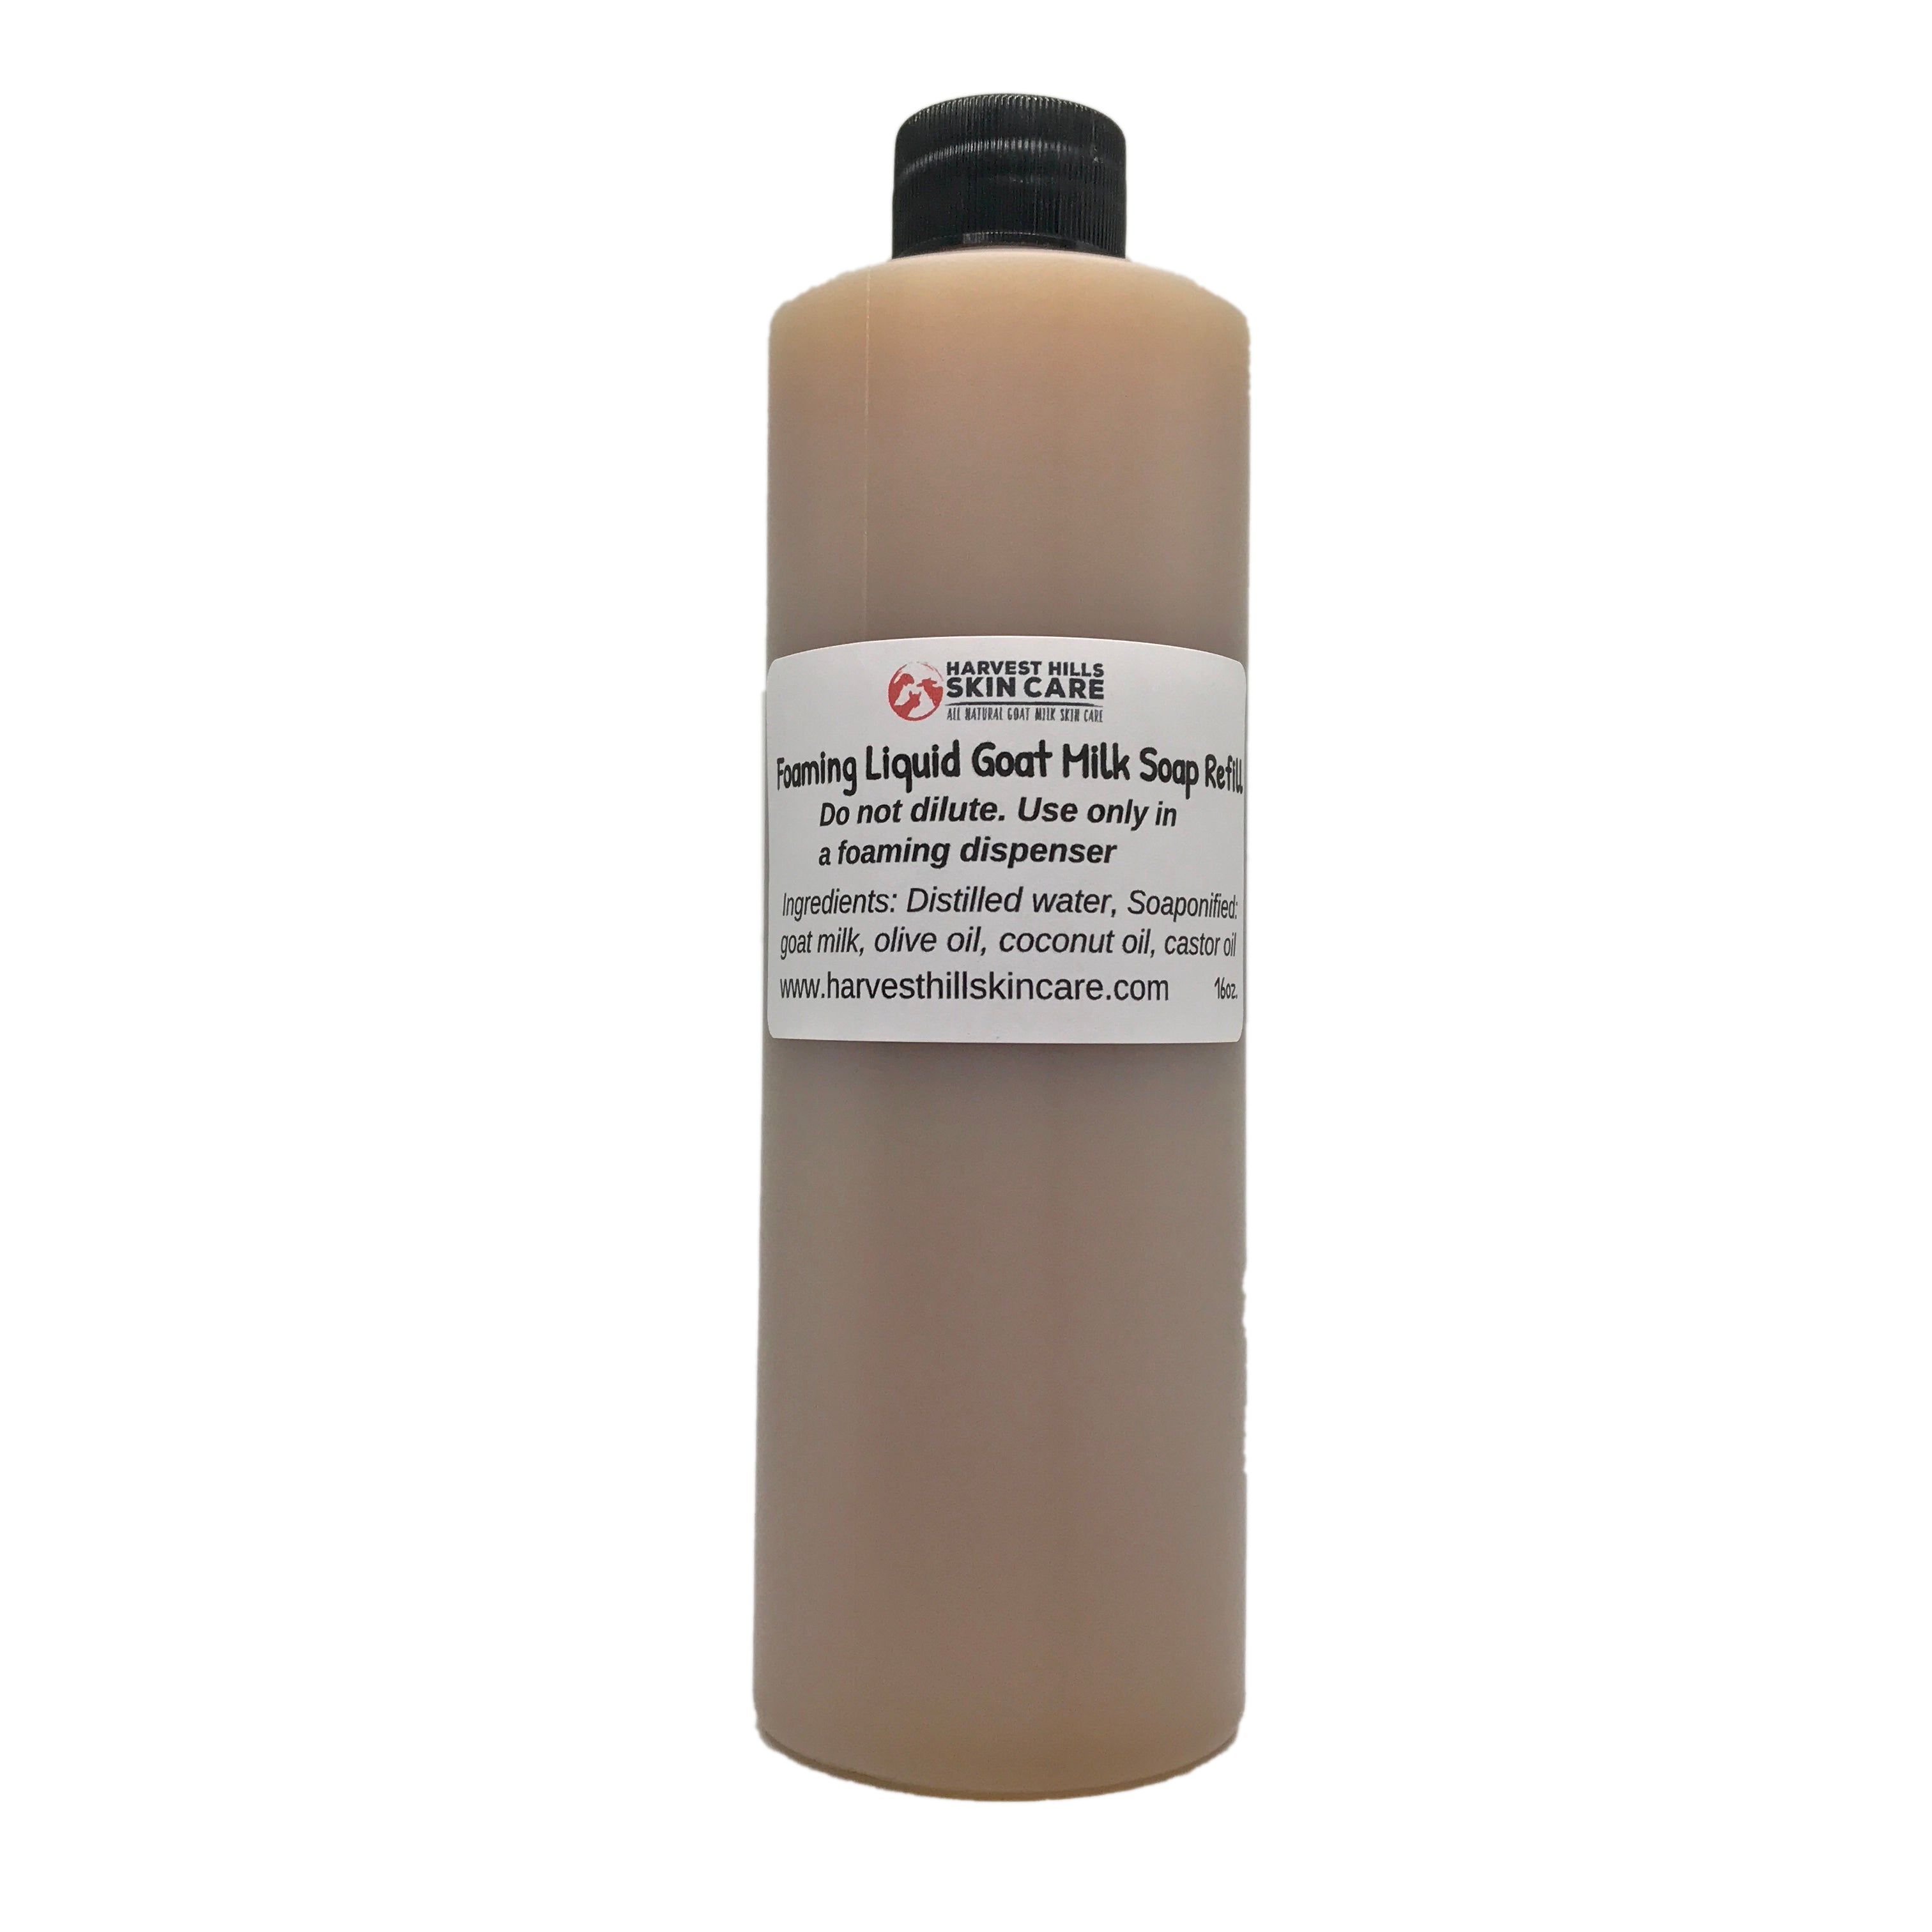 Liquid Goat Milk Soap - Foaming - For Hands and Body